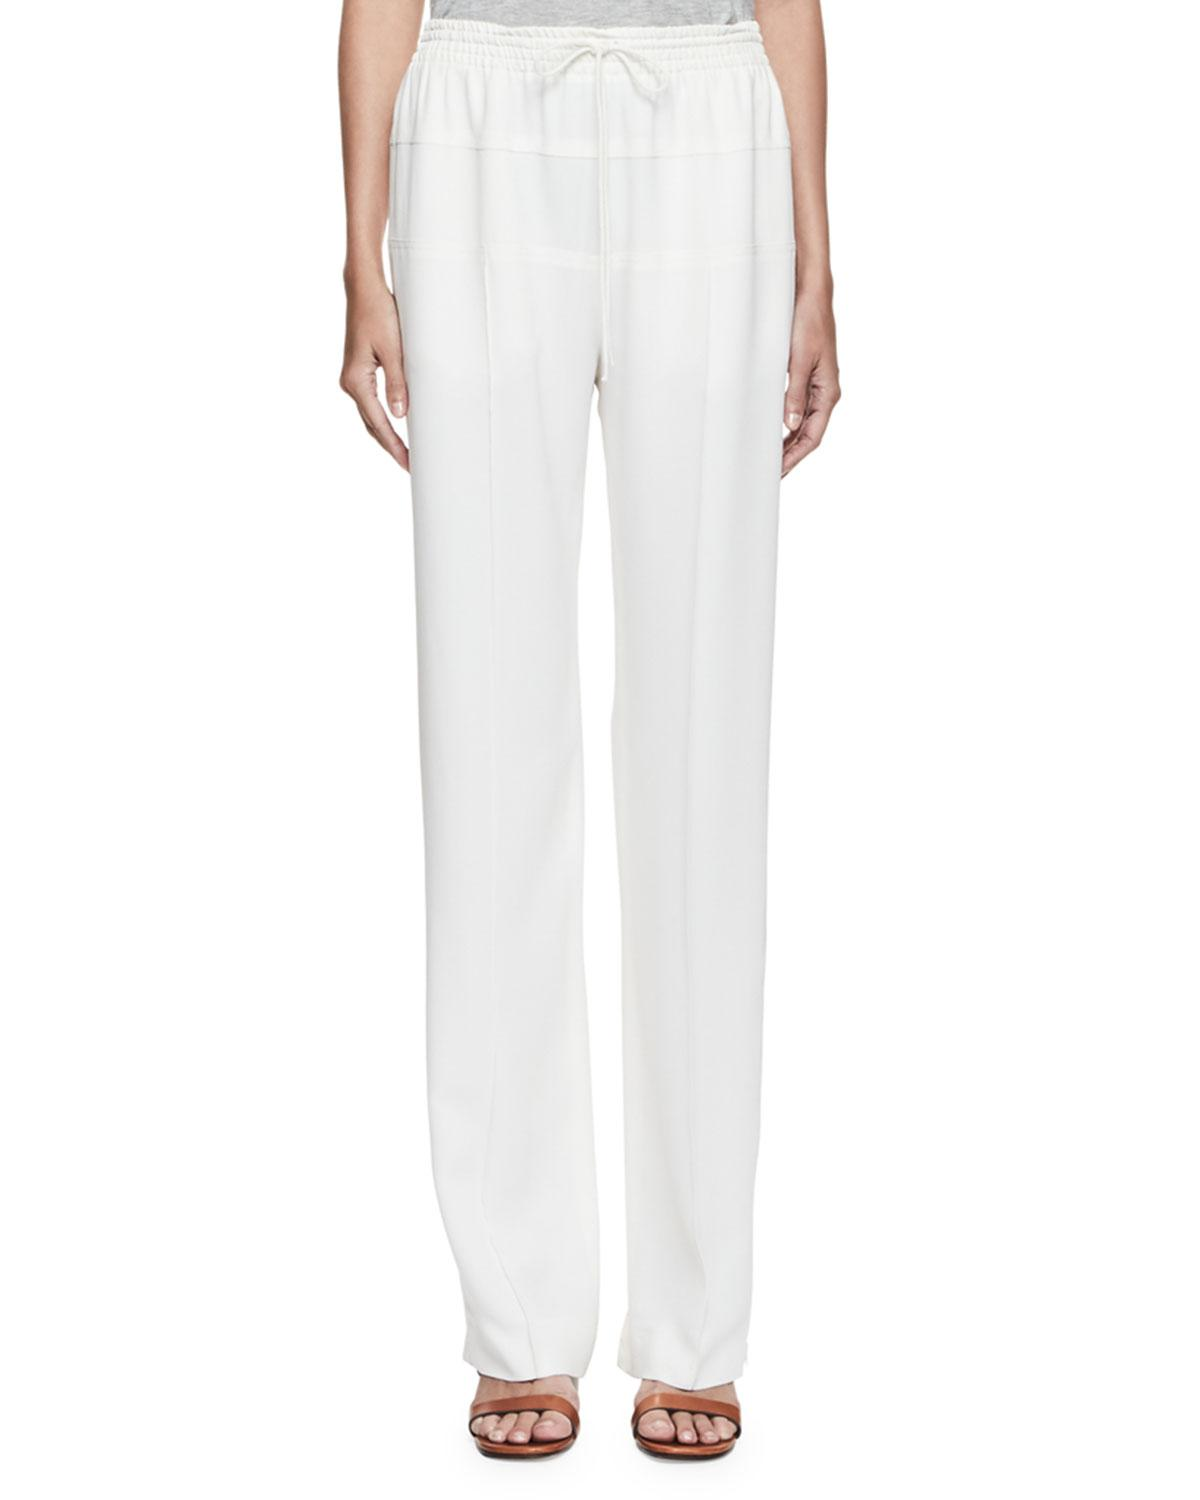 Ebay Sale Online Relaxed trousers Chloé Real Cheap Online TKelT